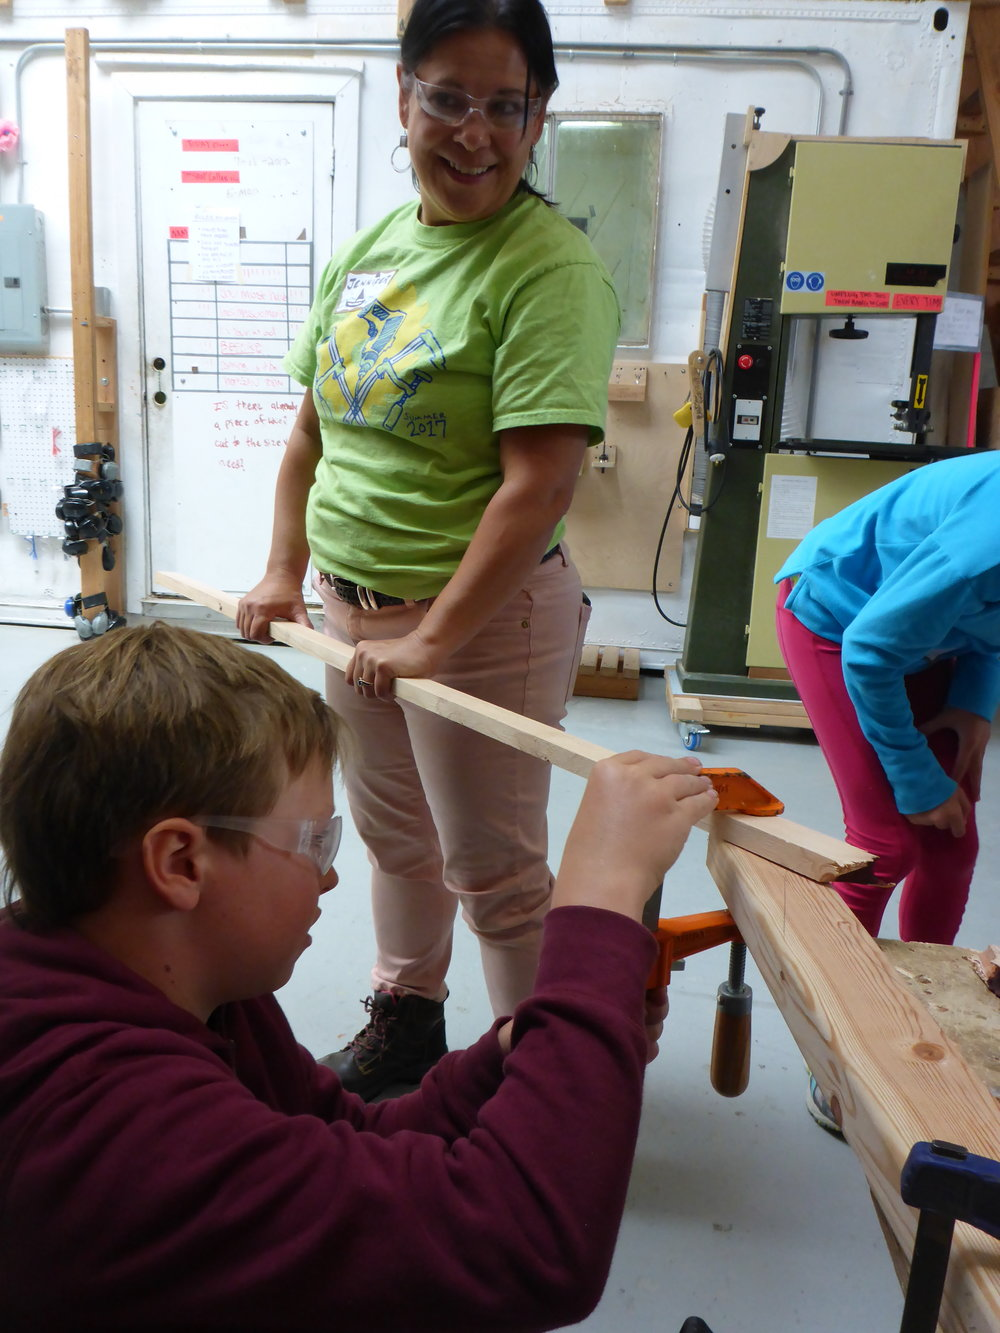 Jennifer helps hold a piece of wood in place while Wolf clamps it to the table. Thanks Jennifer!